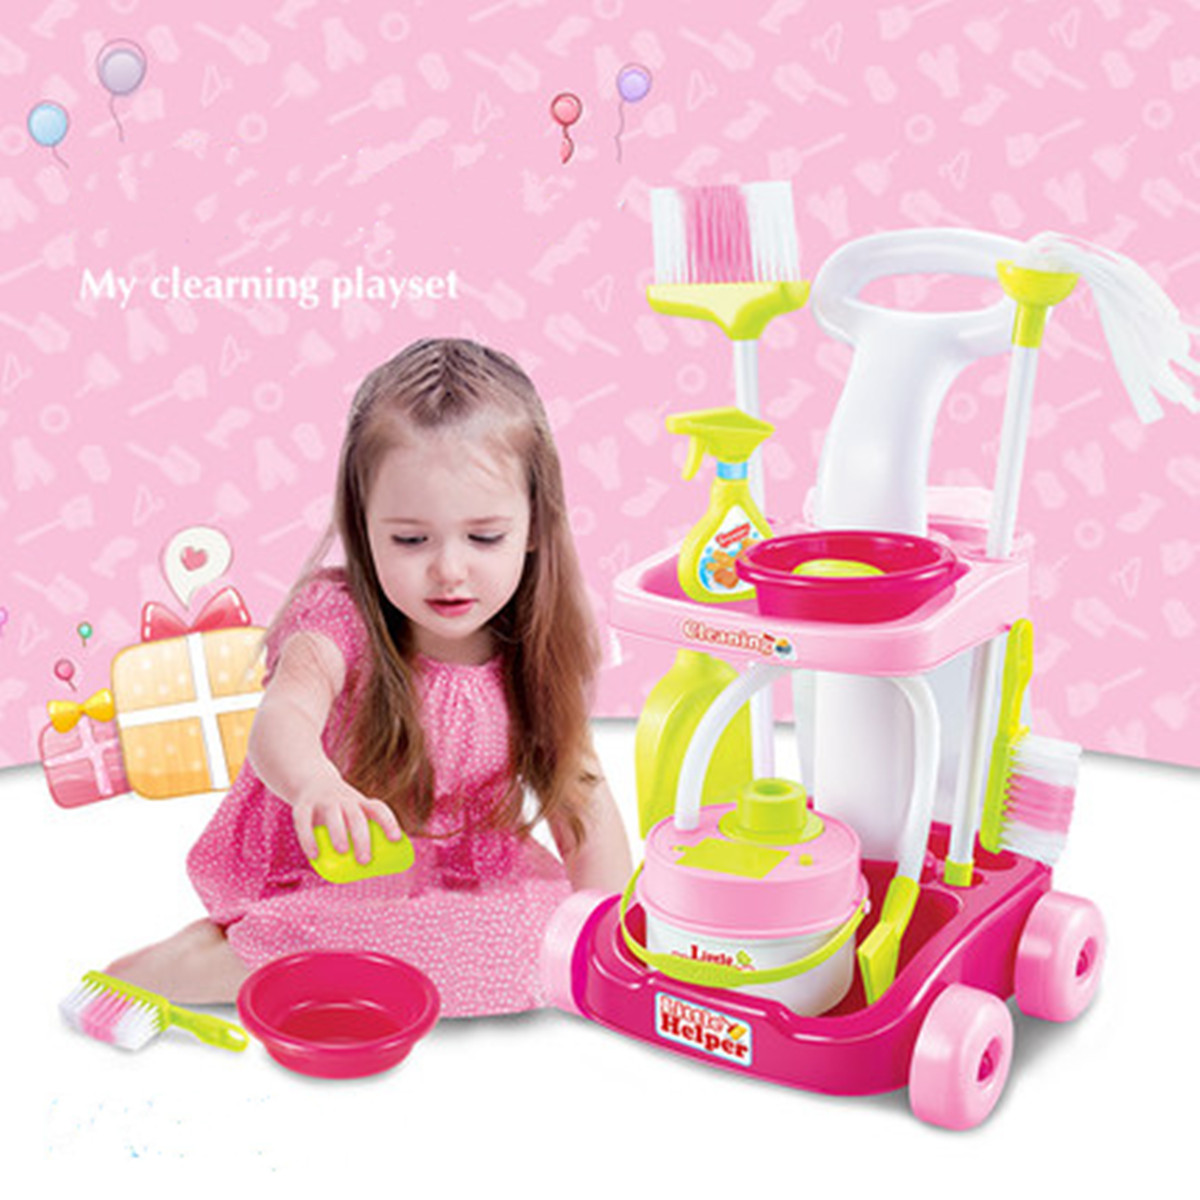 Kids Toddler Cleaner Cleaning Trolley Set Broom Duster Plastic Role Play Educational Toy 38x19x53cm for children above 3 years